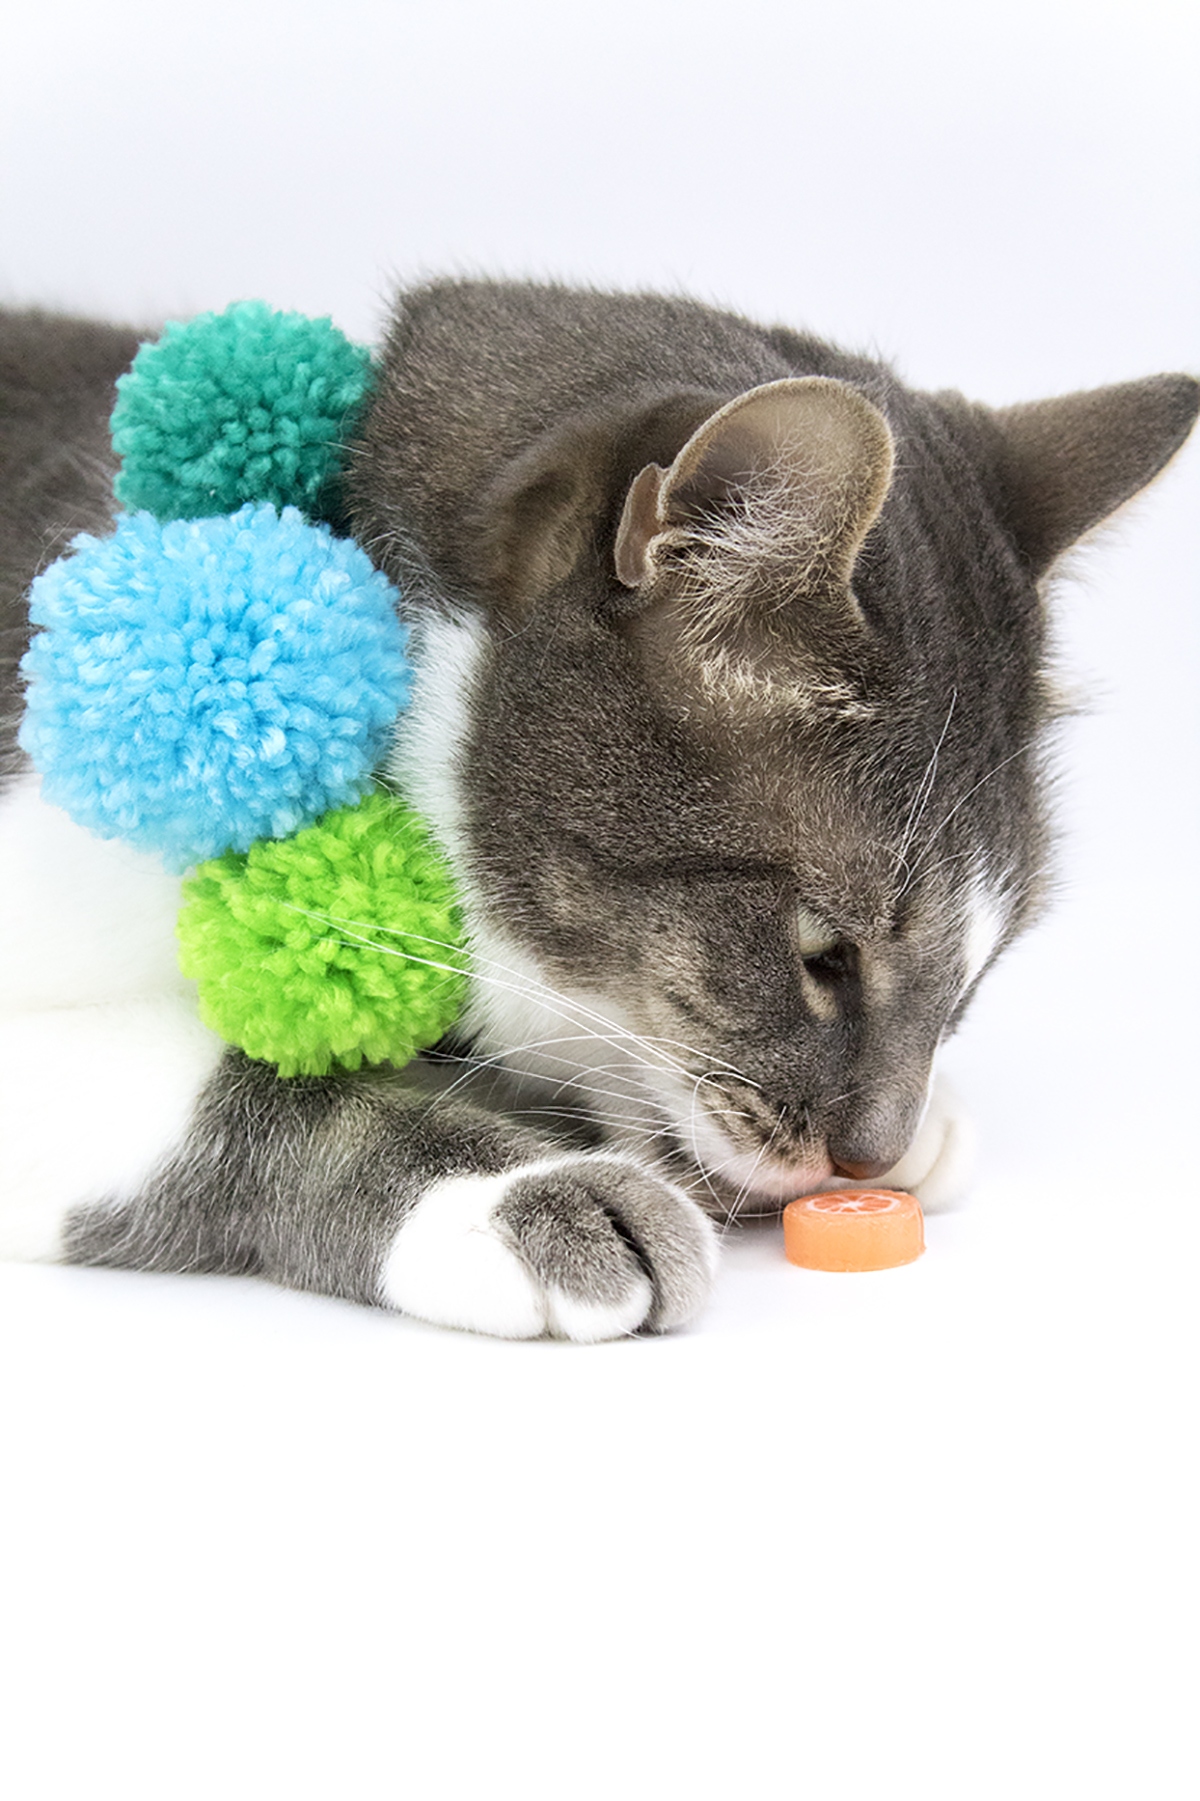 These pom pom collars are so cute, even cats can't help but love them! They're easy to make and fun to wear, so grab your pom-pom maker and your yarn. We're about to get crafty! #catcrafts #dogcrafts #pompomcrafts